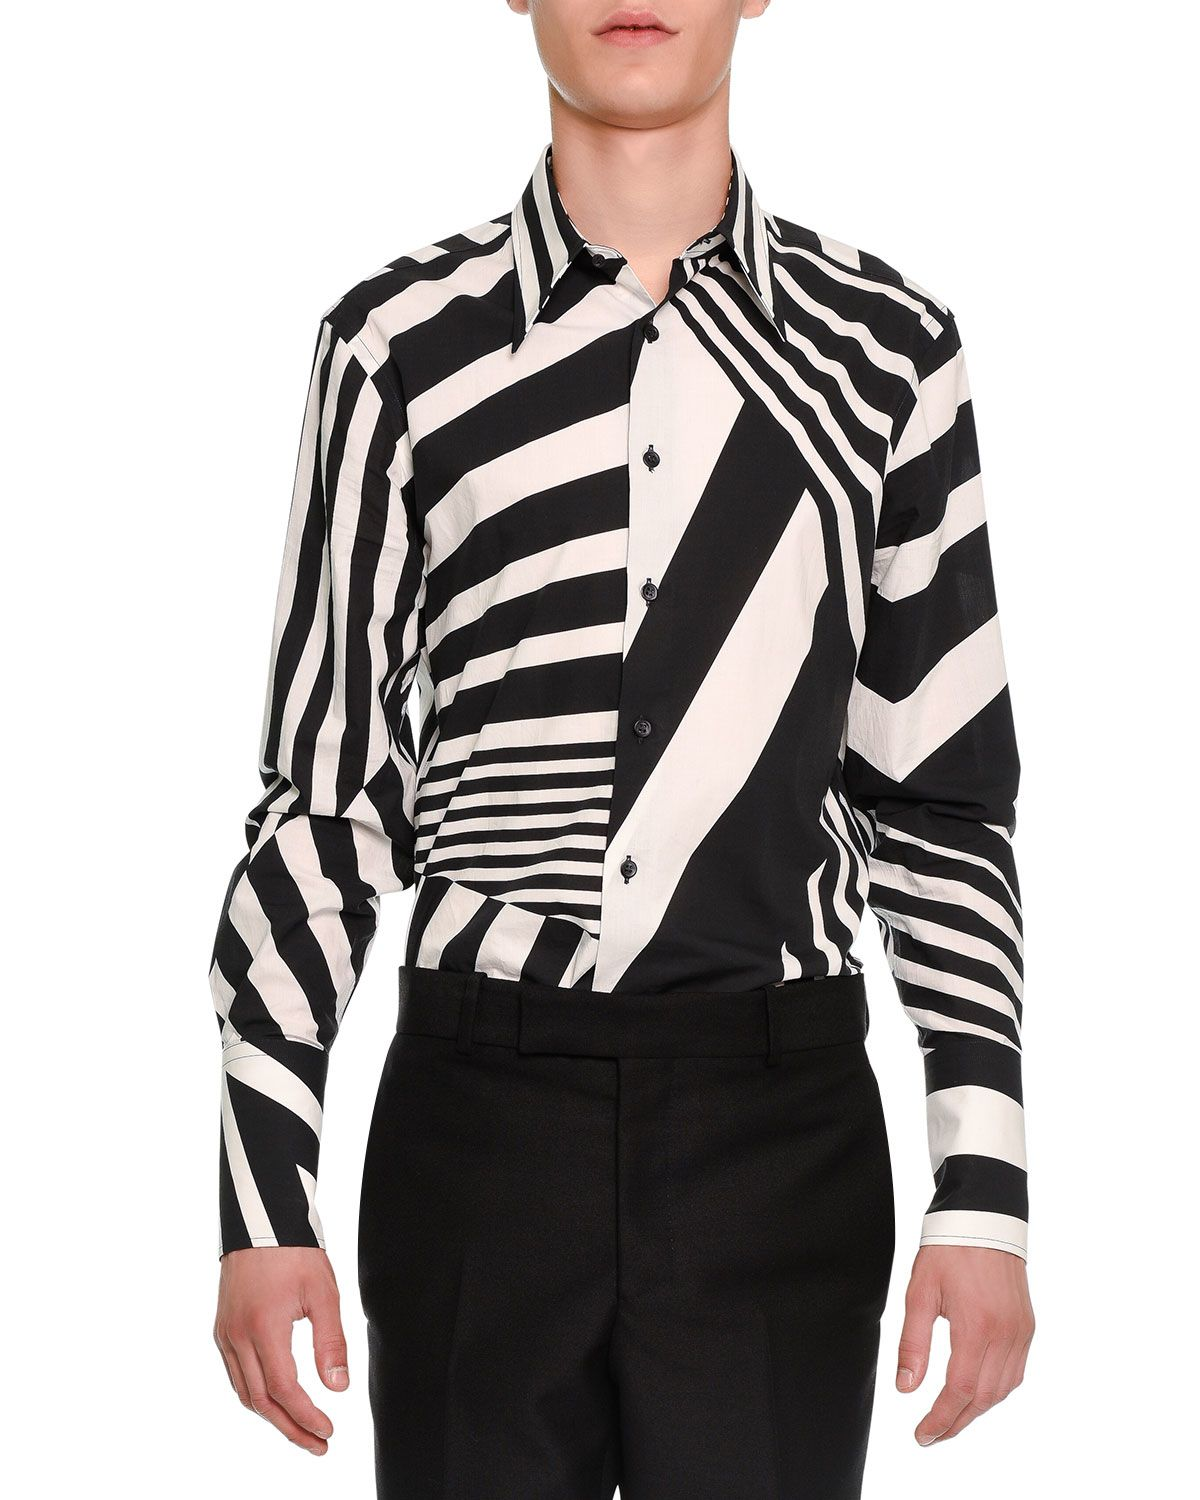 055cac7fb2 mens red & white striped dress pants | Lyst - Alexander mcqueen  Stripe-patched Button-down Shirt .